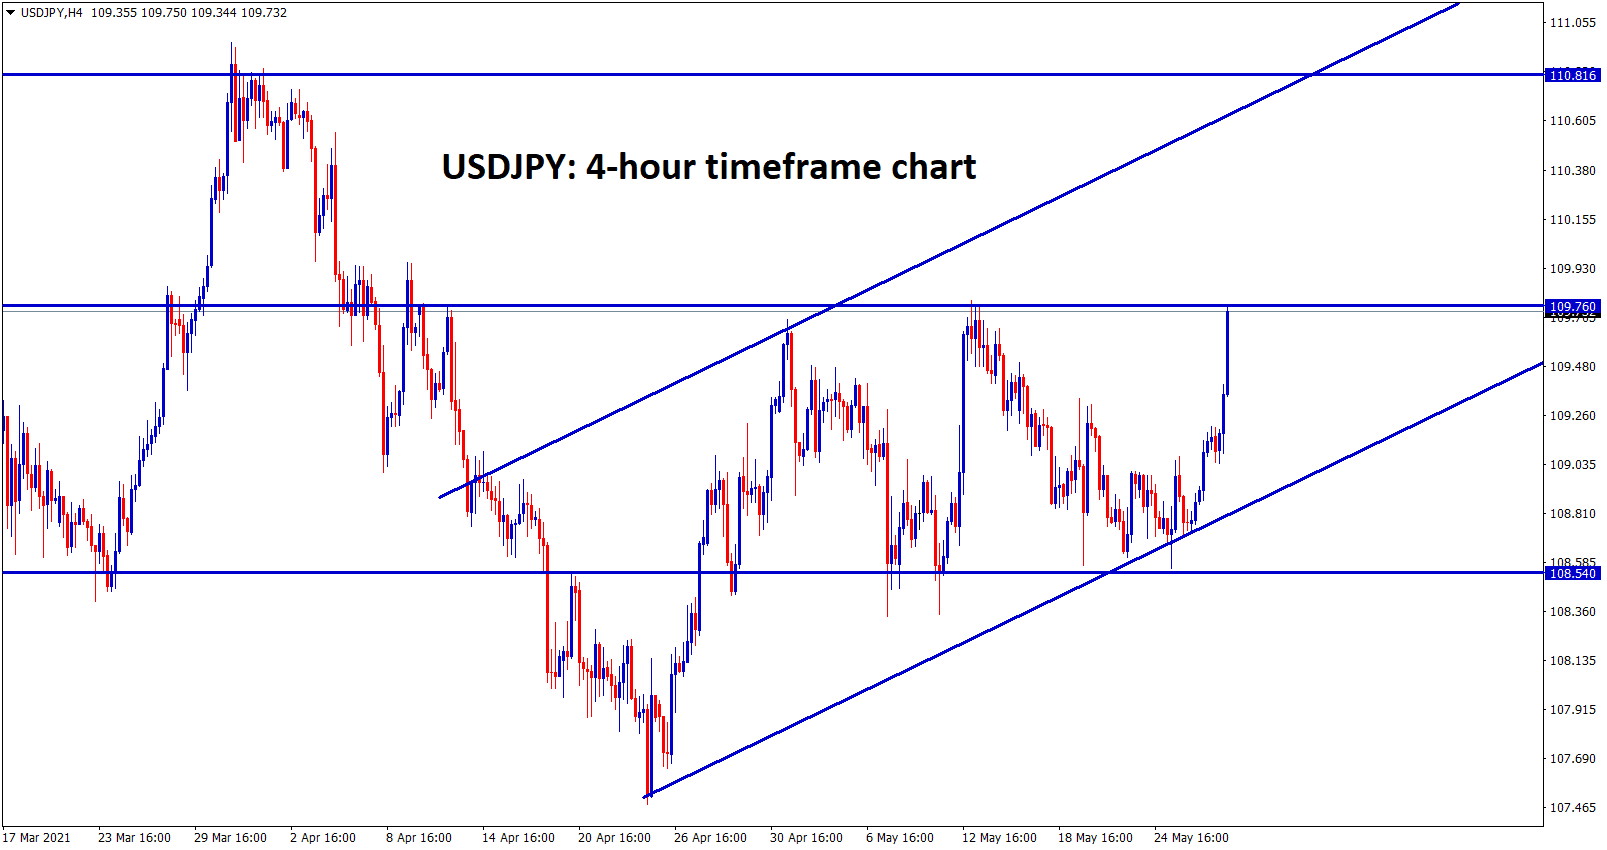 USDJPY bounced up from the critical support and start continue its uptrend